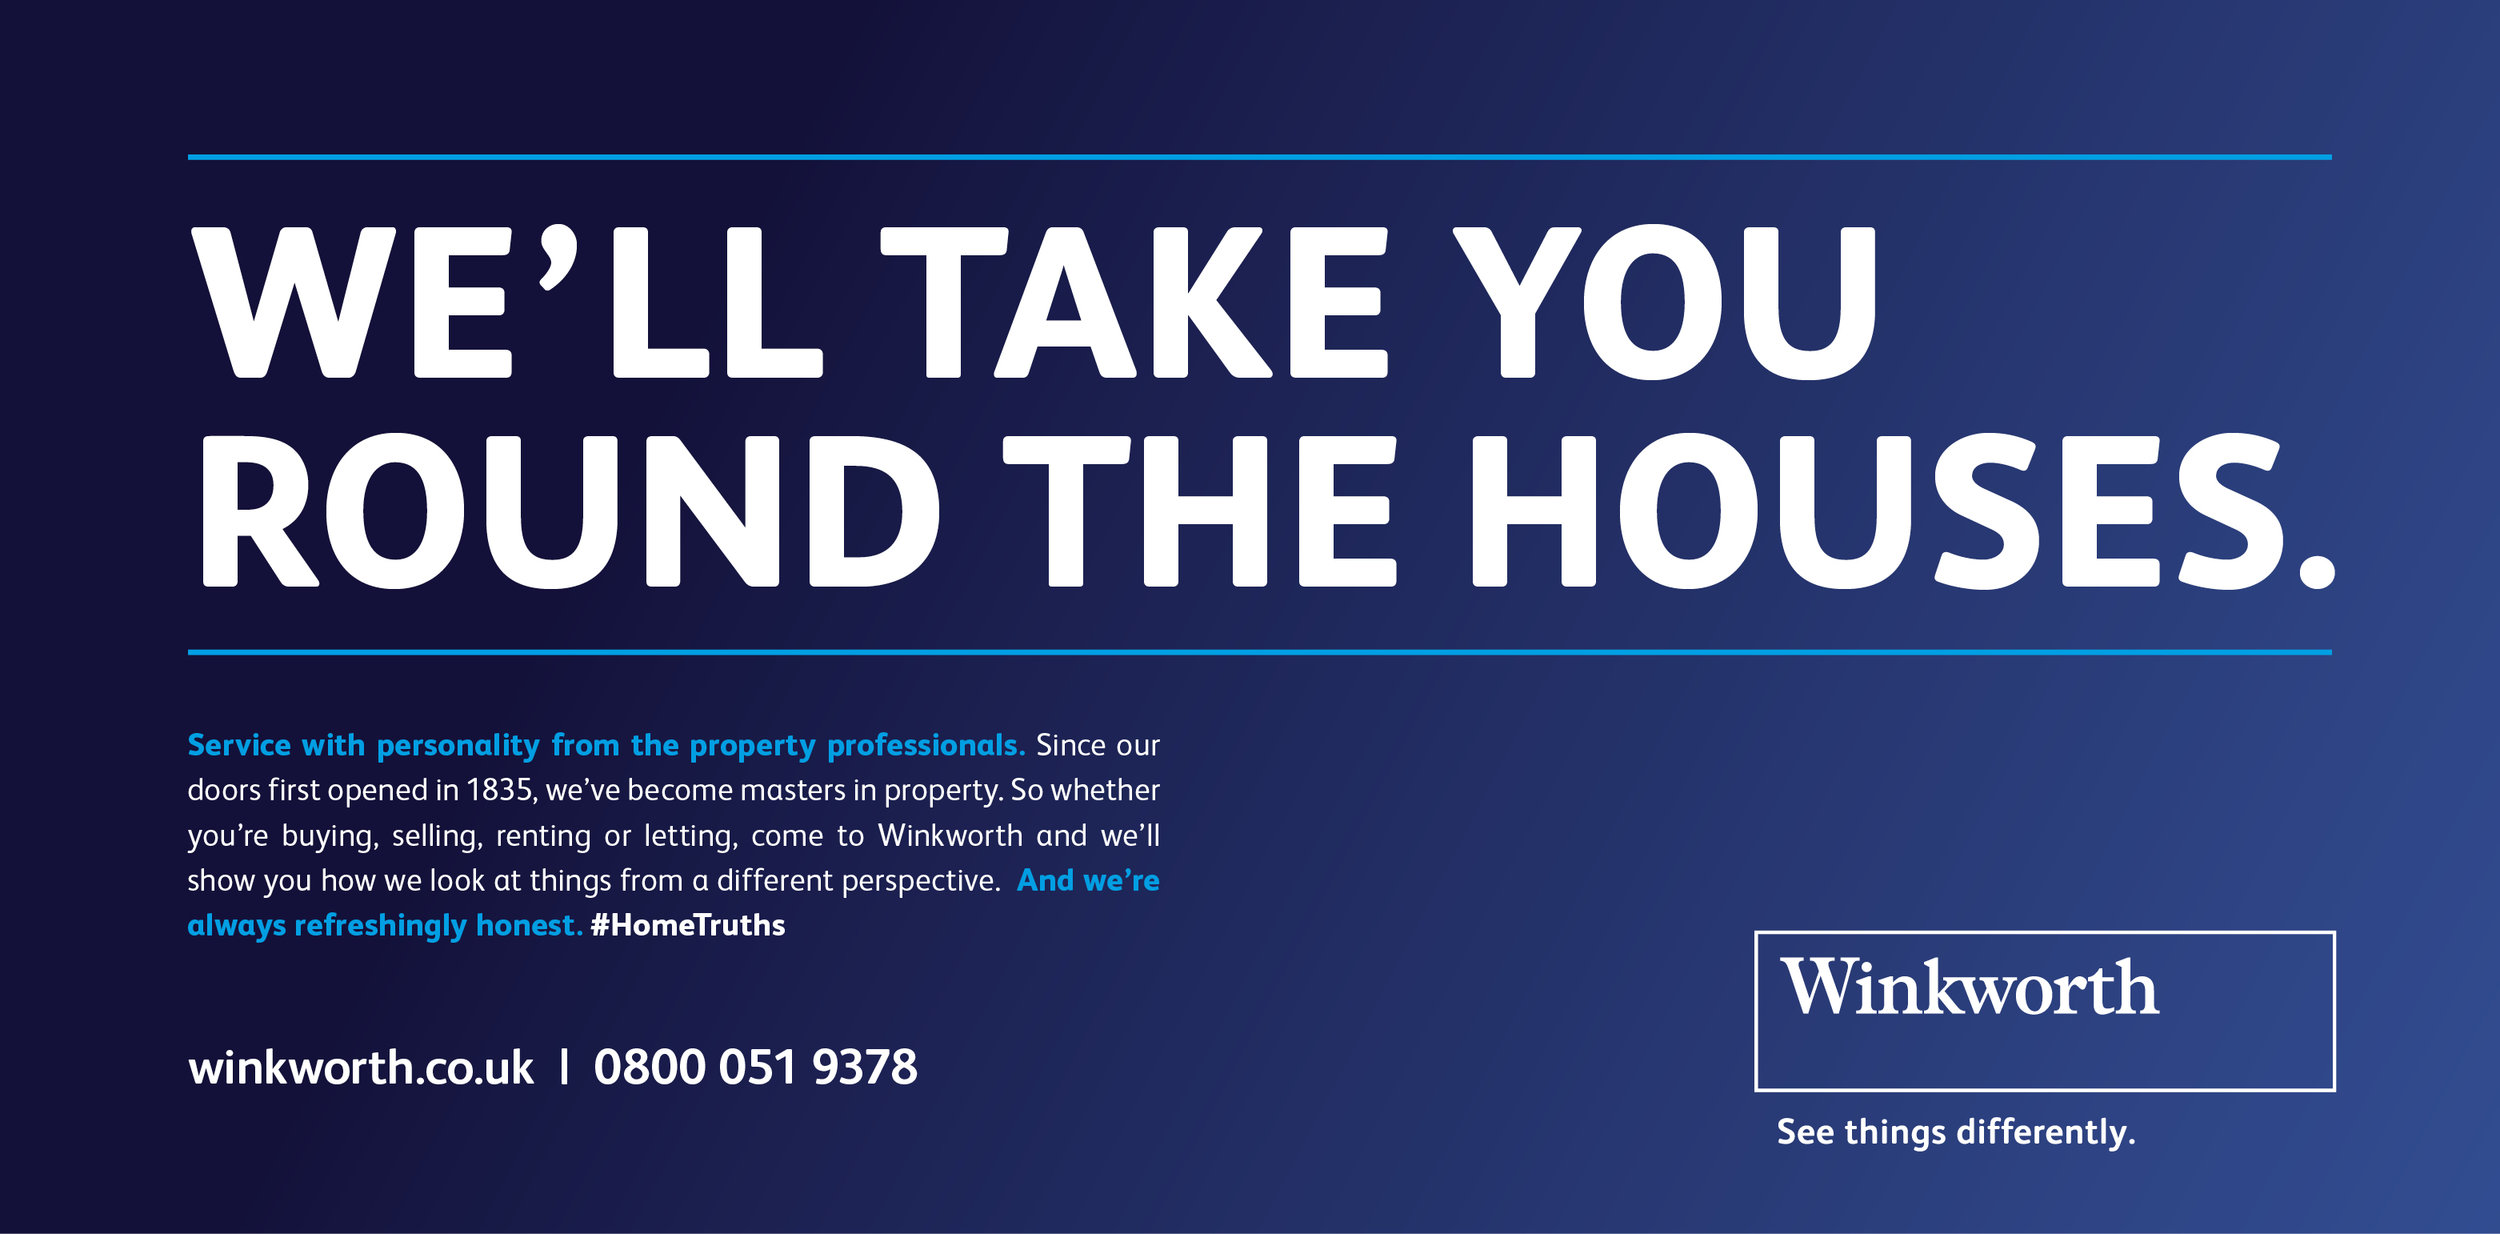 Winkworth4.jpg